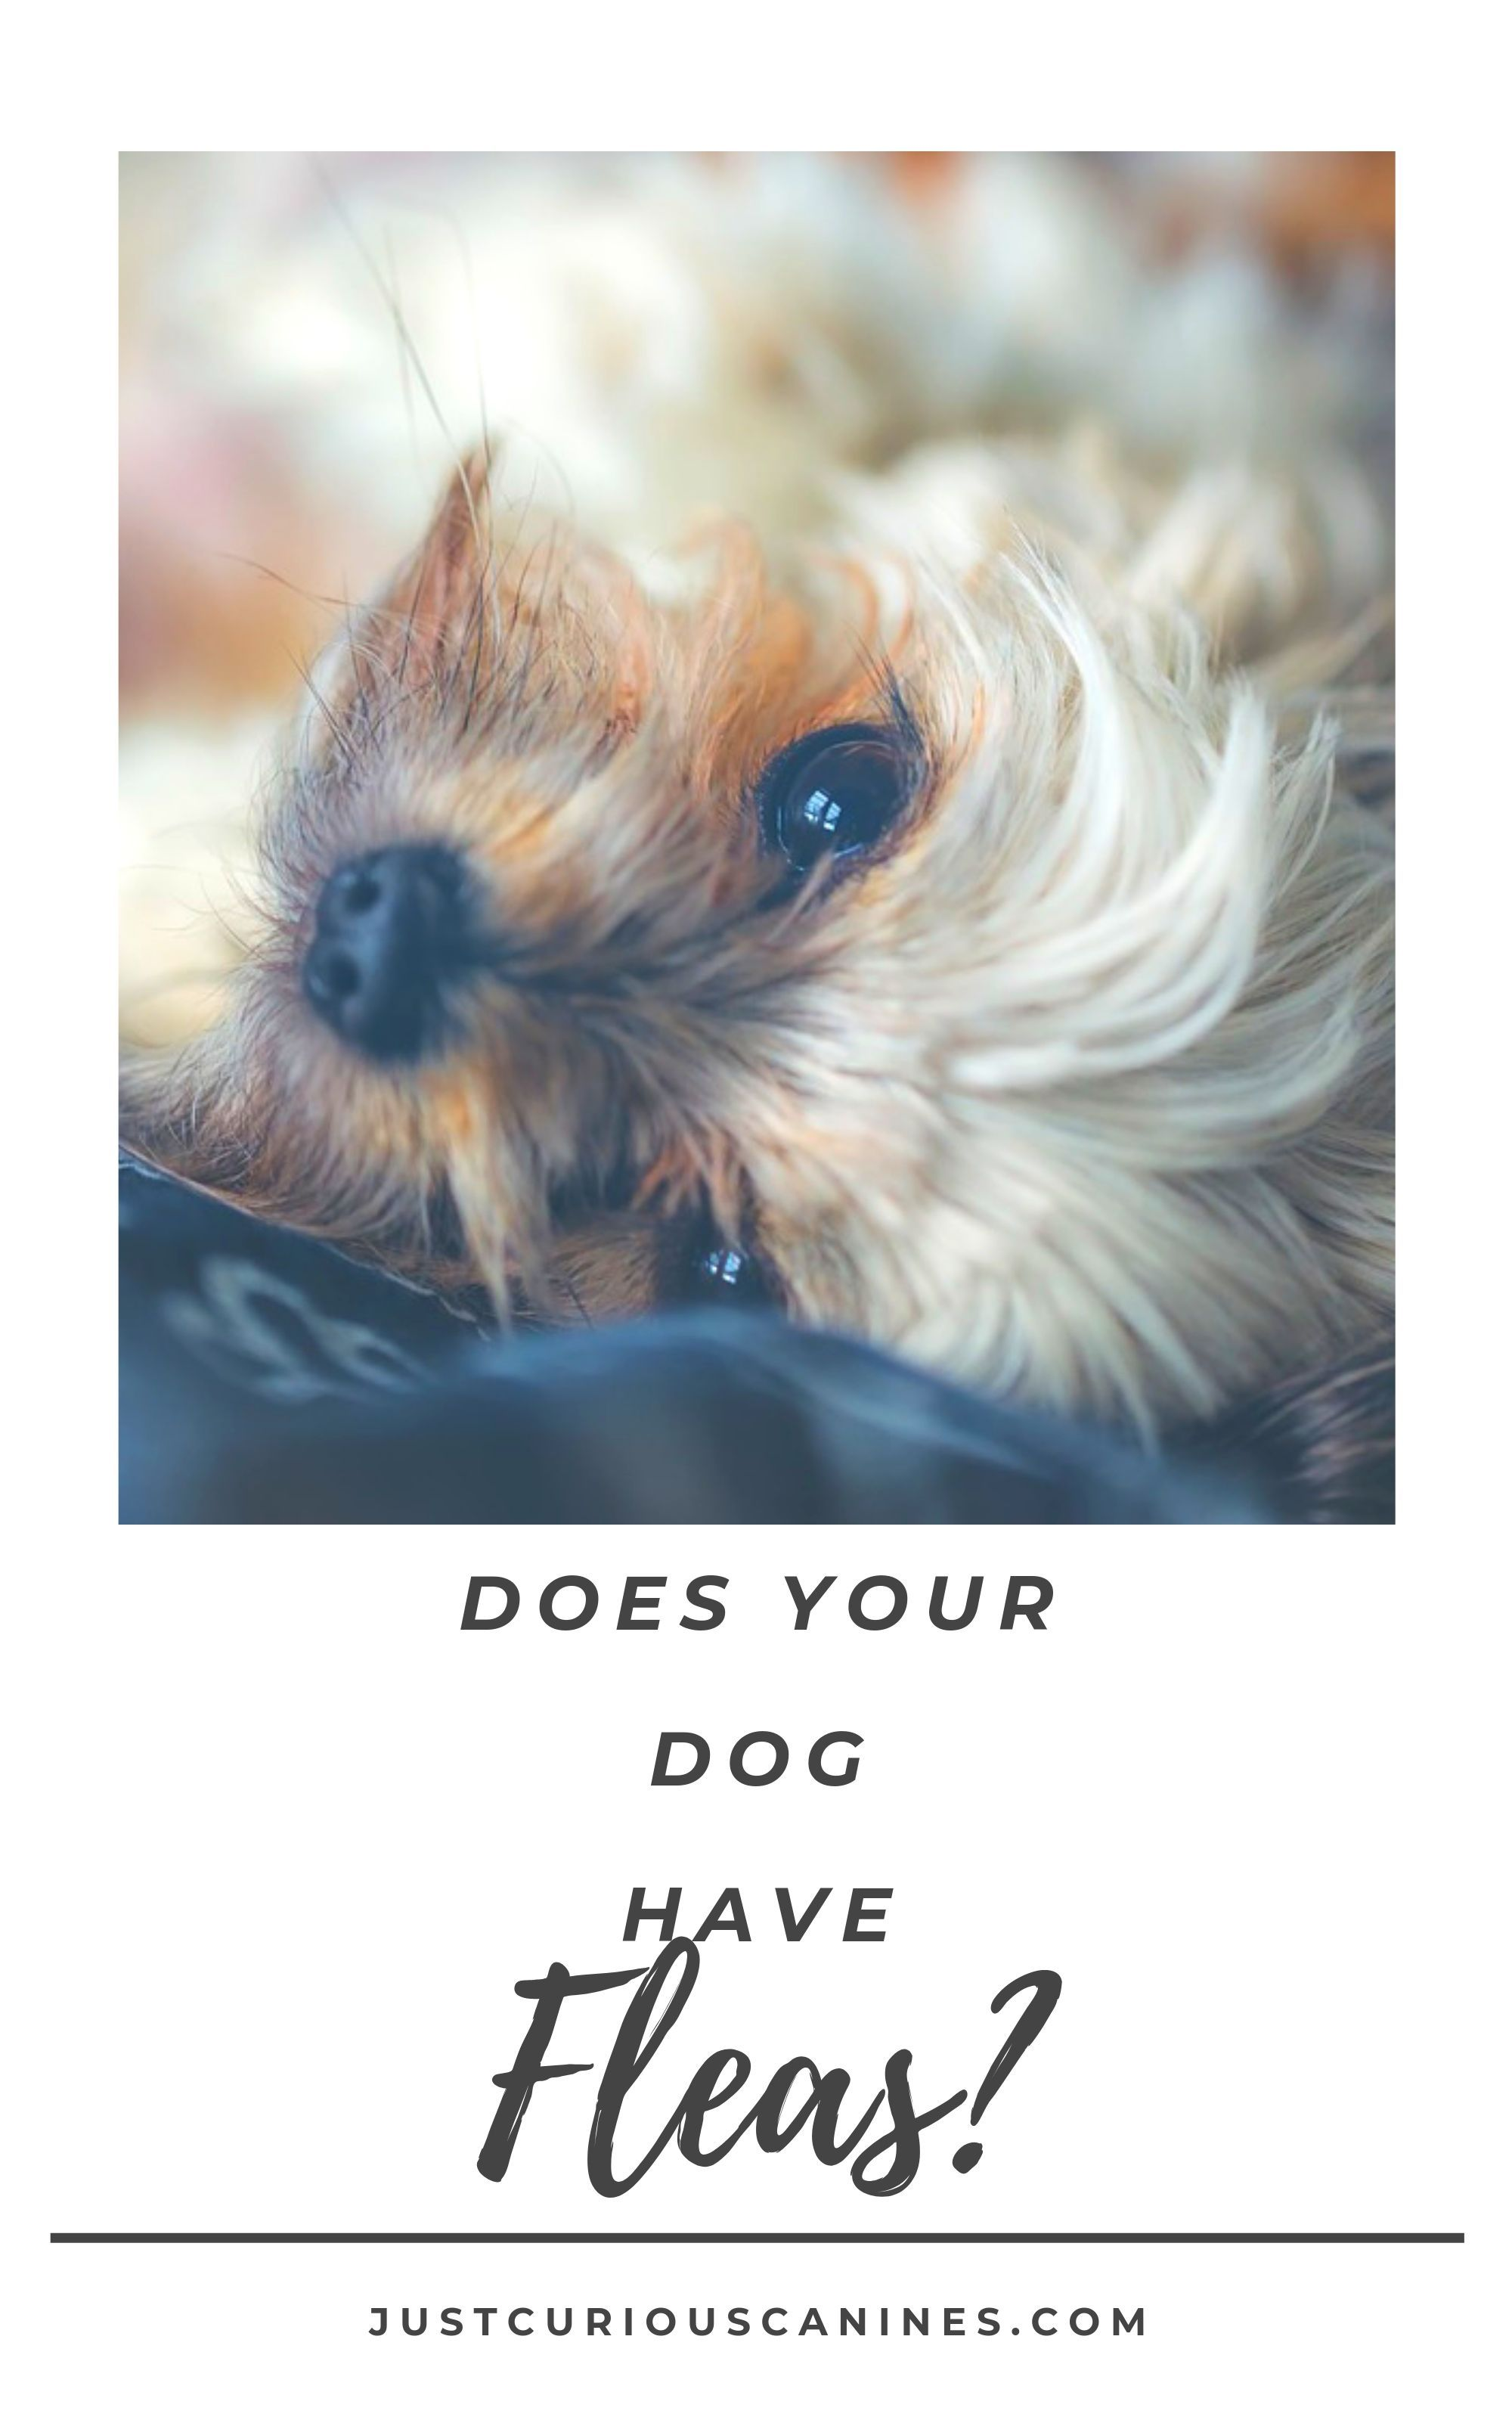 Does your dog have fleas dog wellness dogs your dog